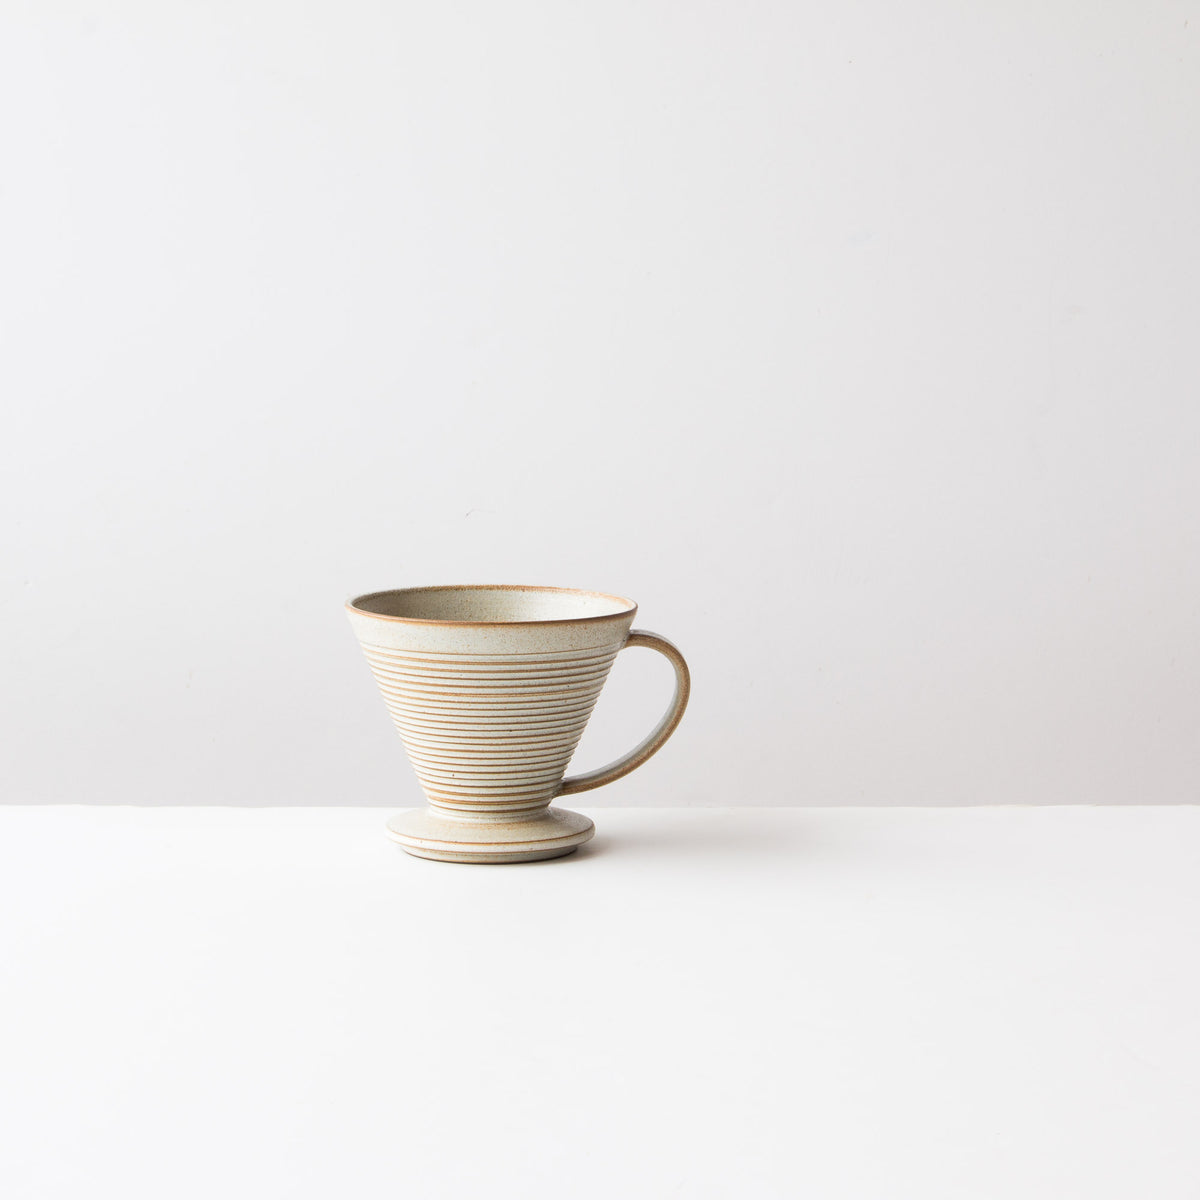 Greige Colour - Handmade Ceramic Pour-Over Coffee Dripper - Sold by Chic & Basta